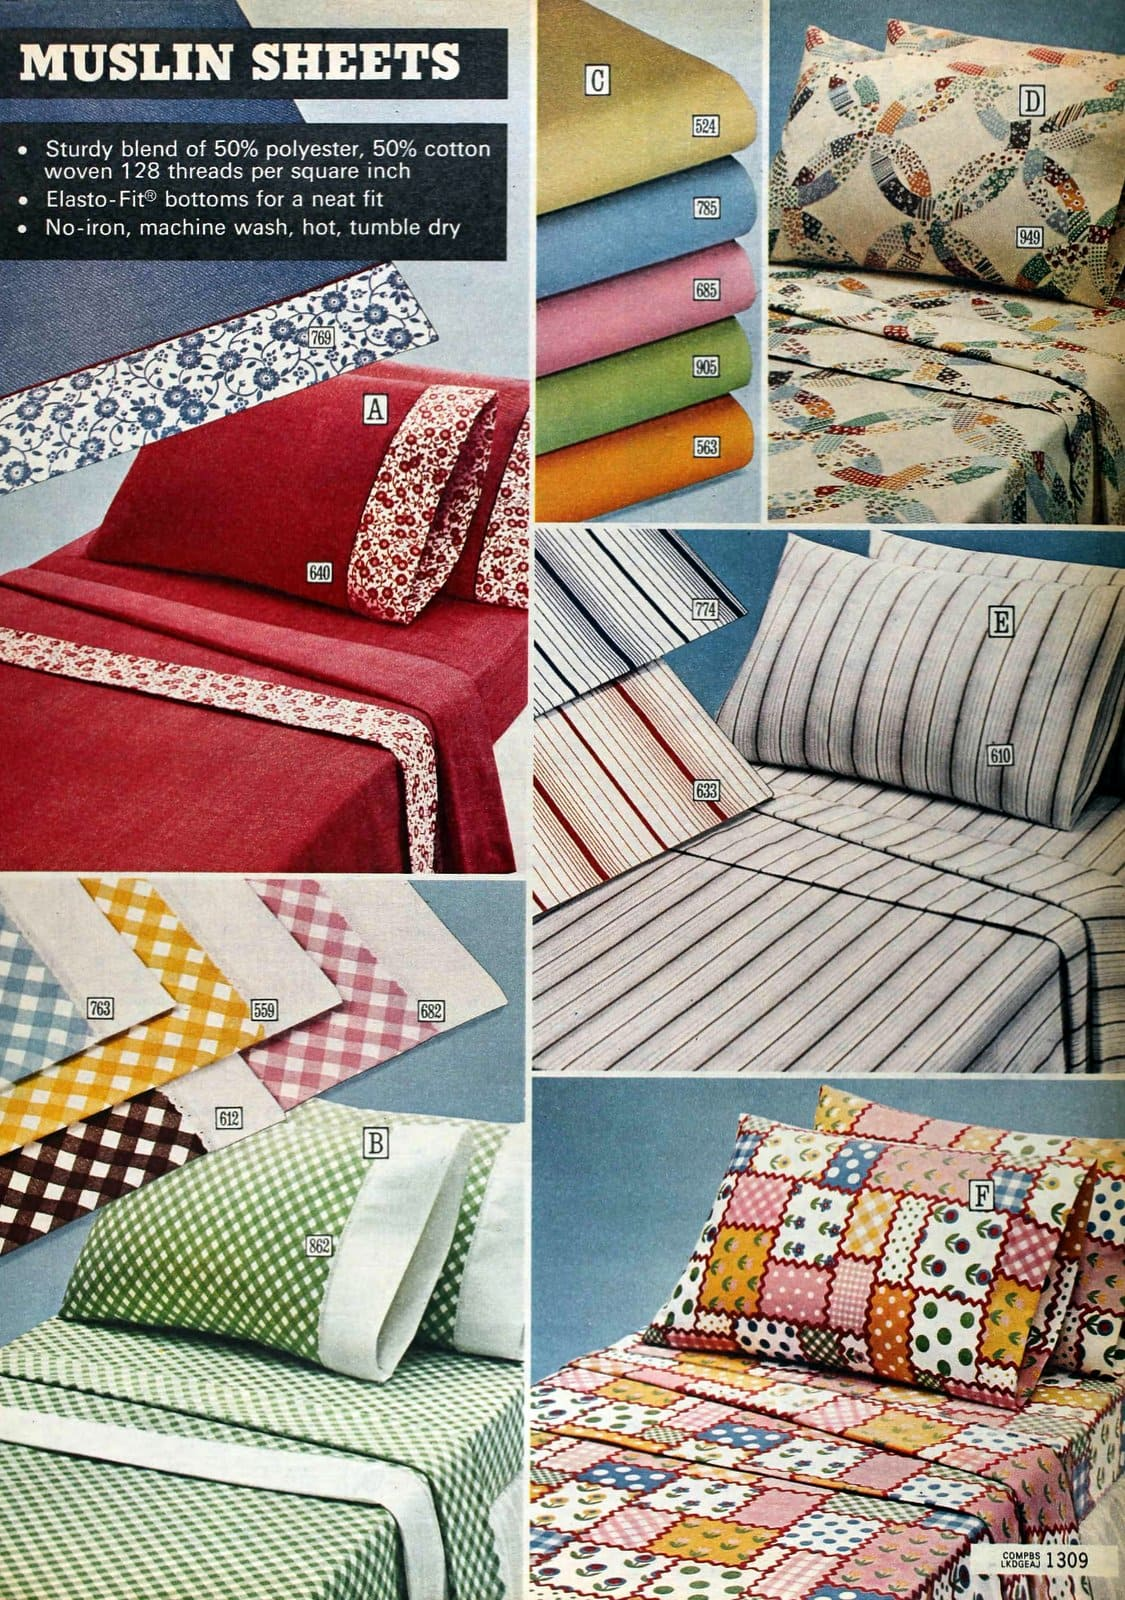 Contemporary 1970s muslin sheets - Vintage designs and bedroom home decor